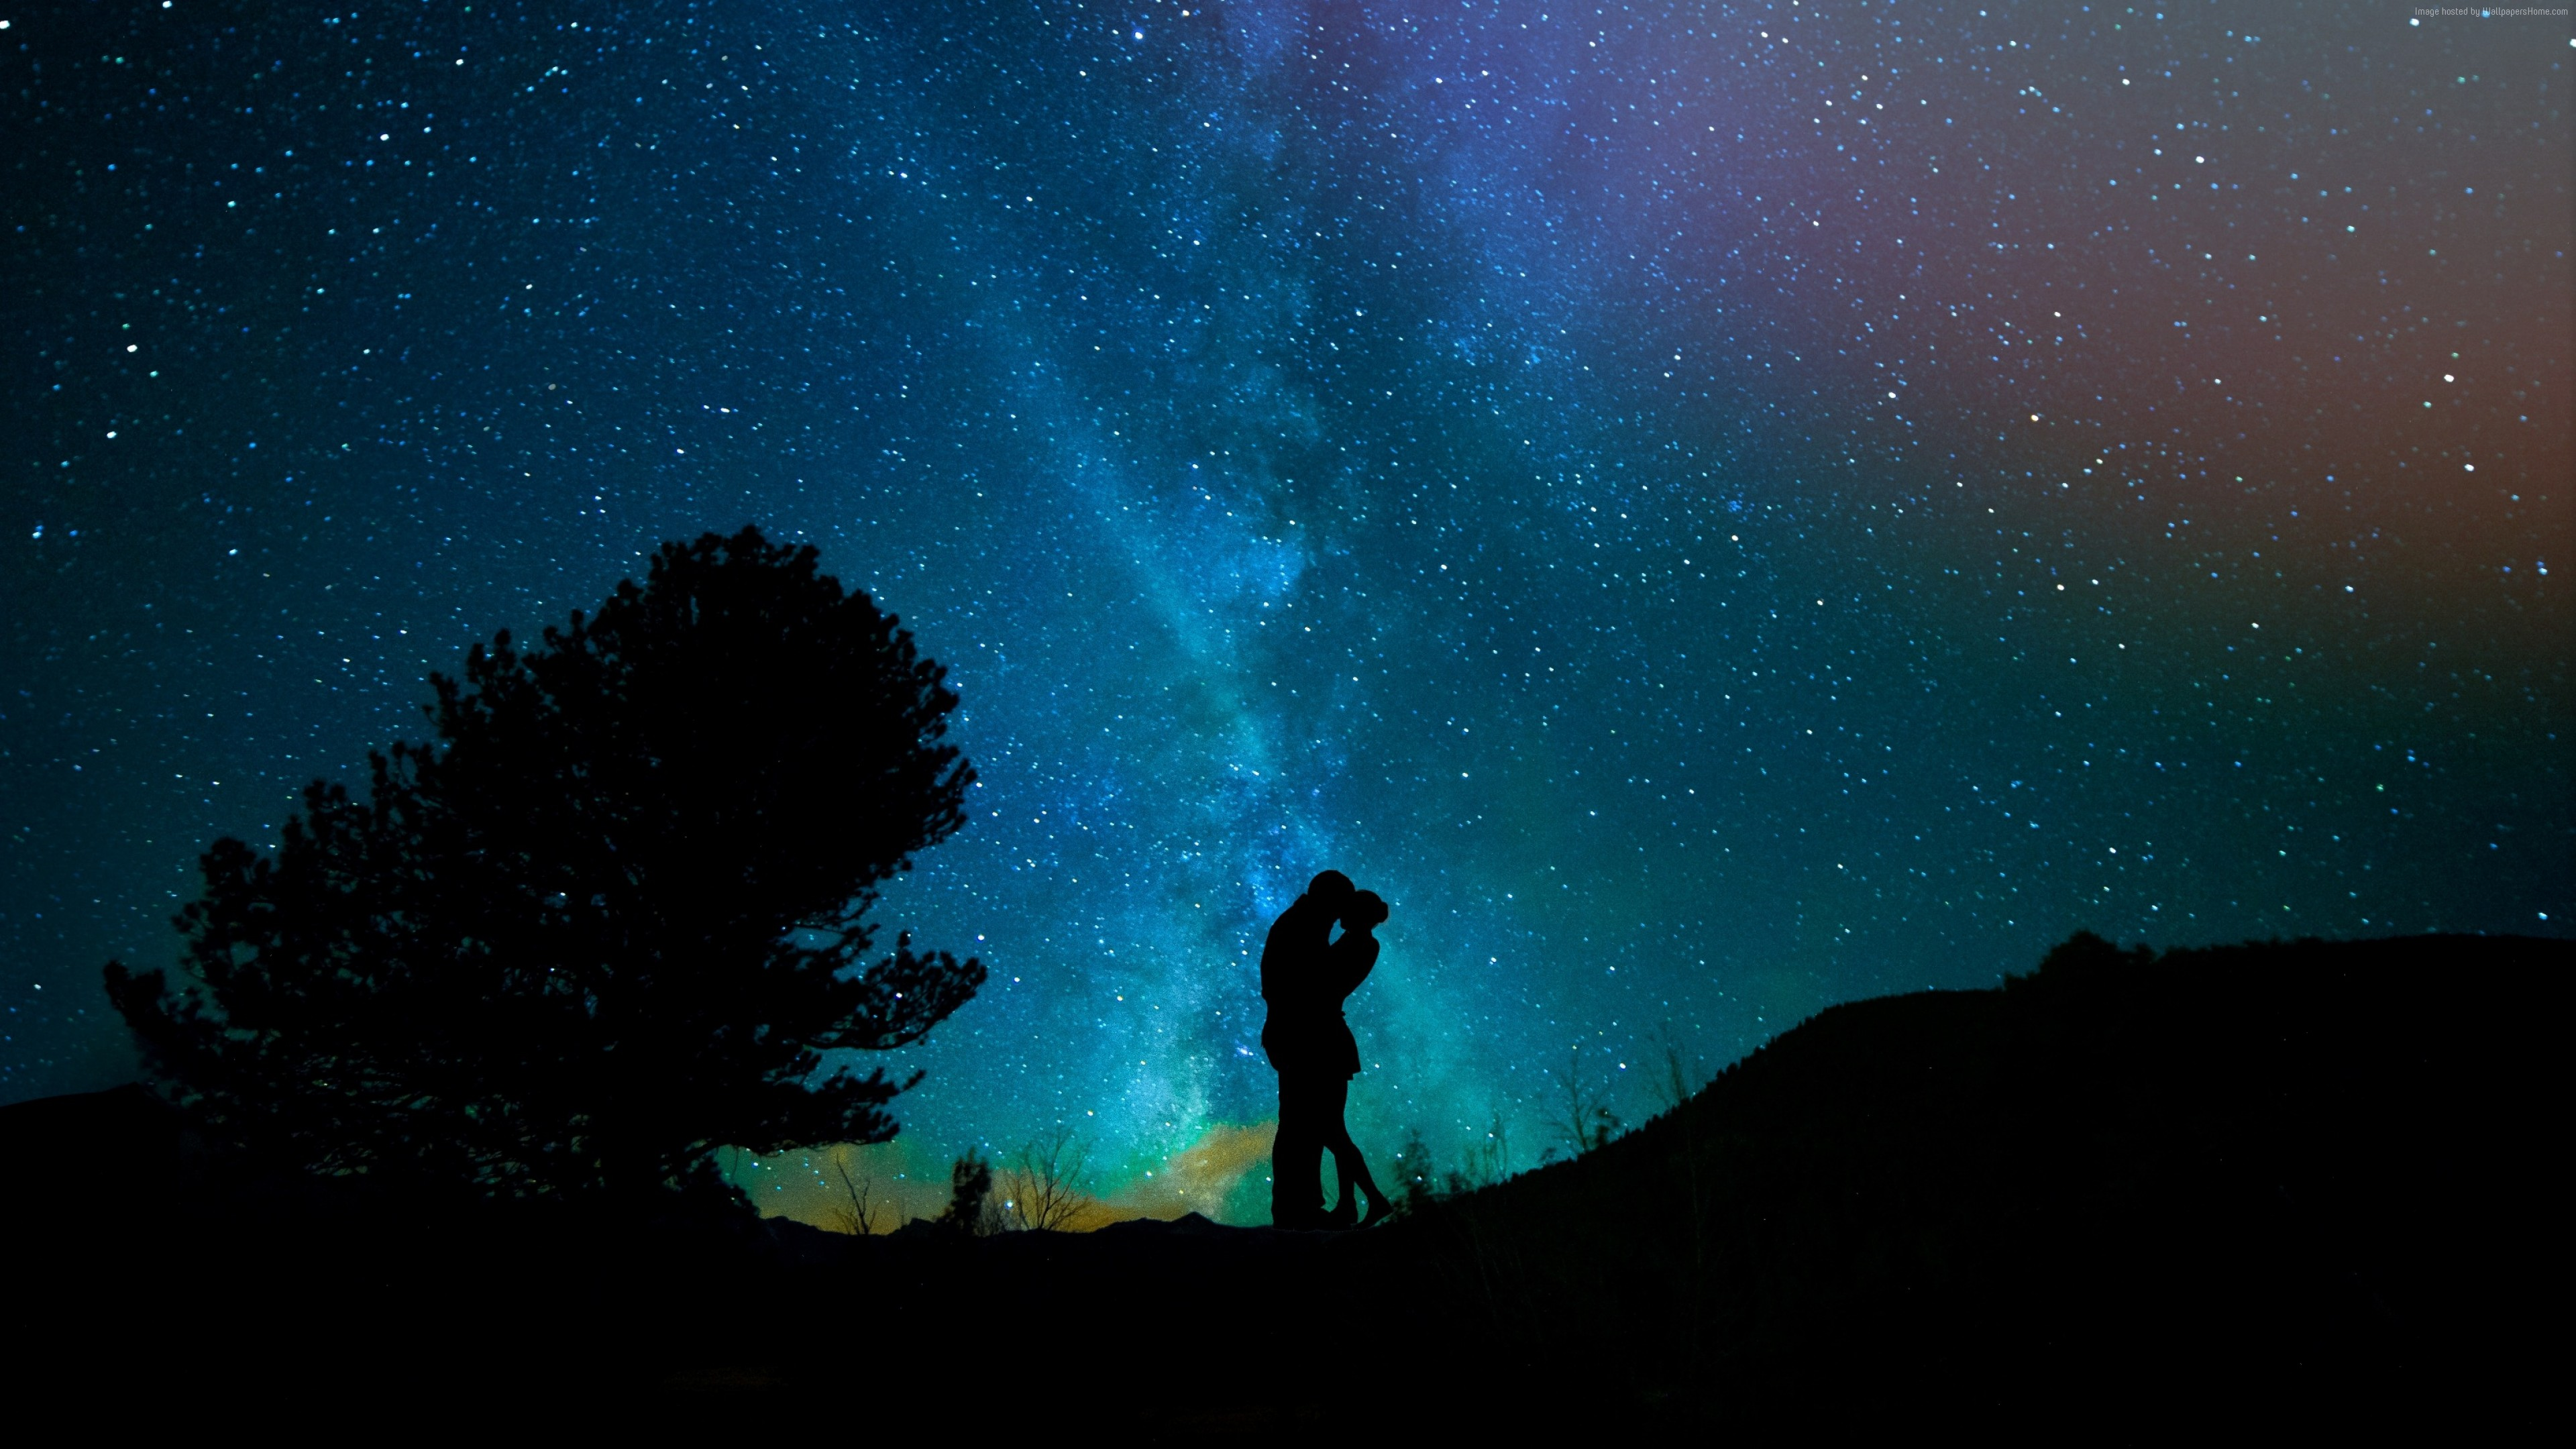 Stock Images love image, kiss, night, sky, stars, 4k, Stock Images